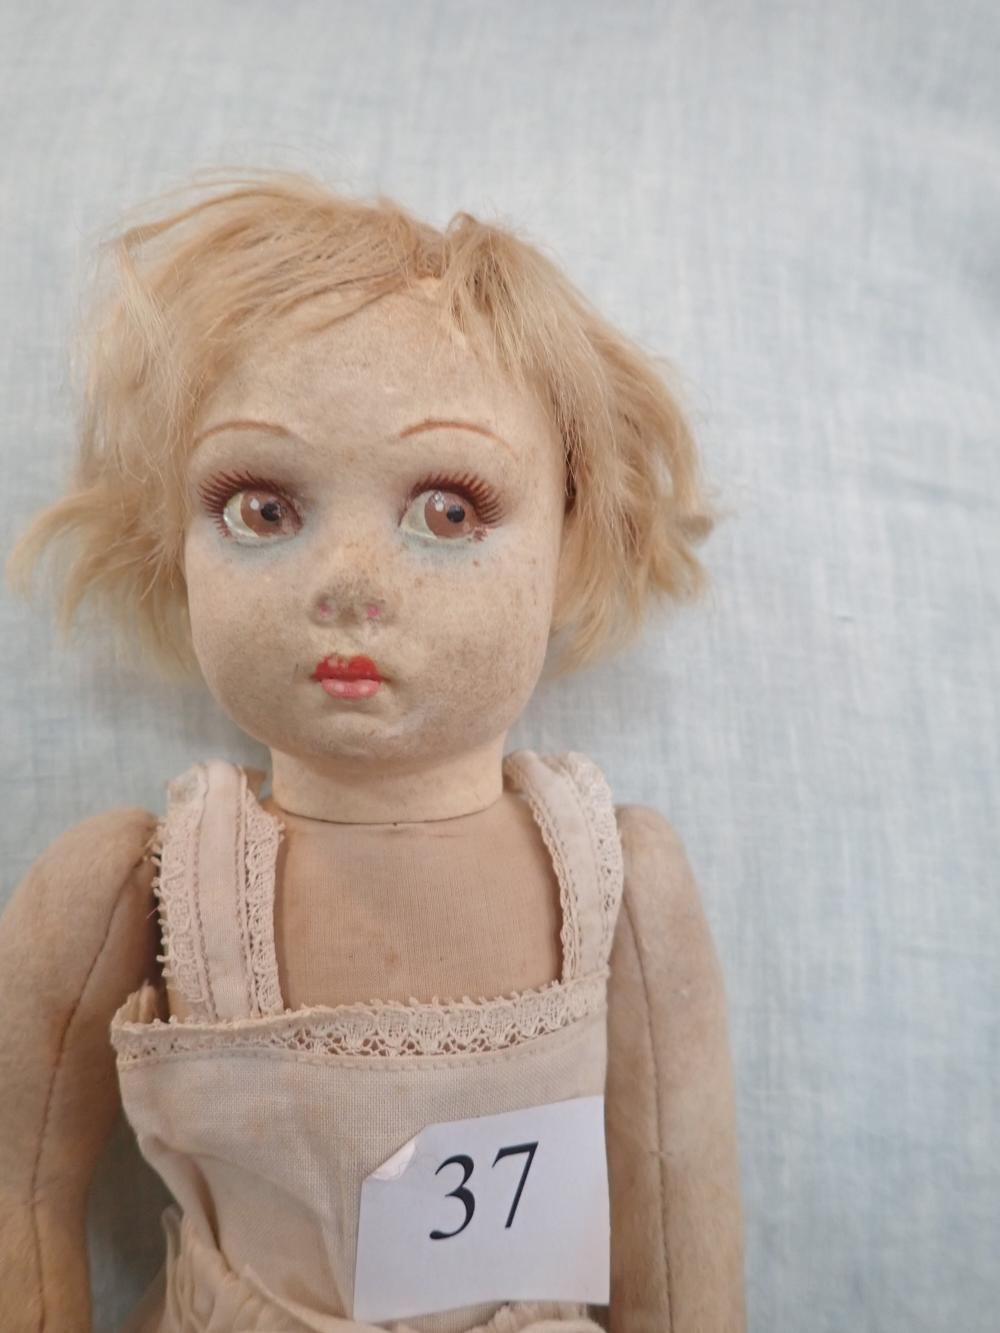 """1931 LENCI DOLL CLOTH BODY WITH FELT FACE, SWIVEL HEAD, FIXED EYES 13"""" HIGH (A) MOVEABLE LEGS ARMS SEWN TO BODY (B) 2 CENTRE FINGERS STITCHED TOGETHER © 2 DOTS ON LIPS , MARKED UNDER BOTH FEET"""